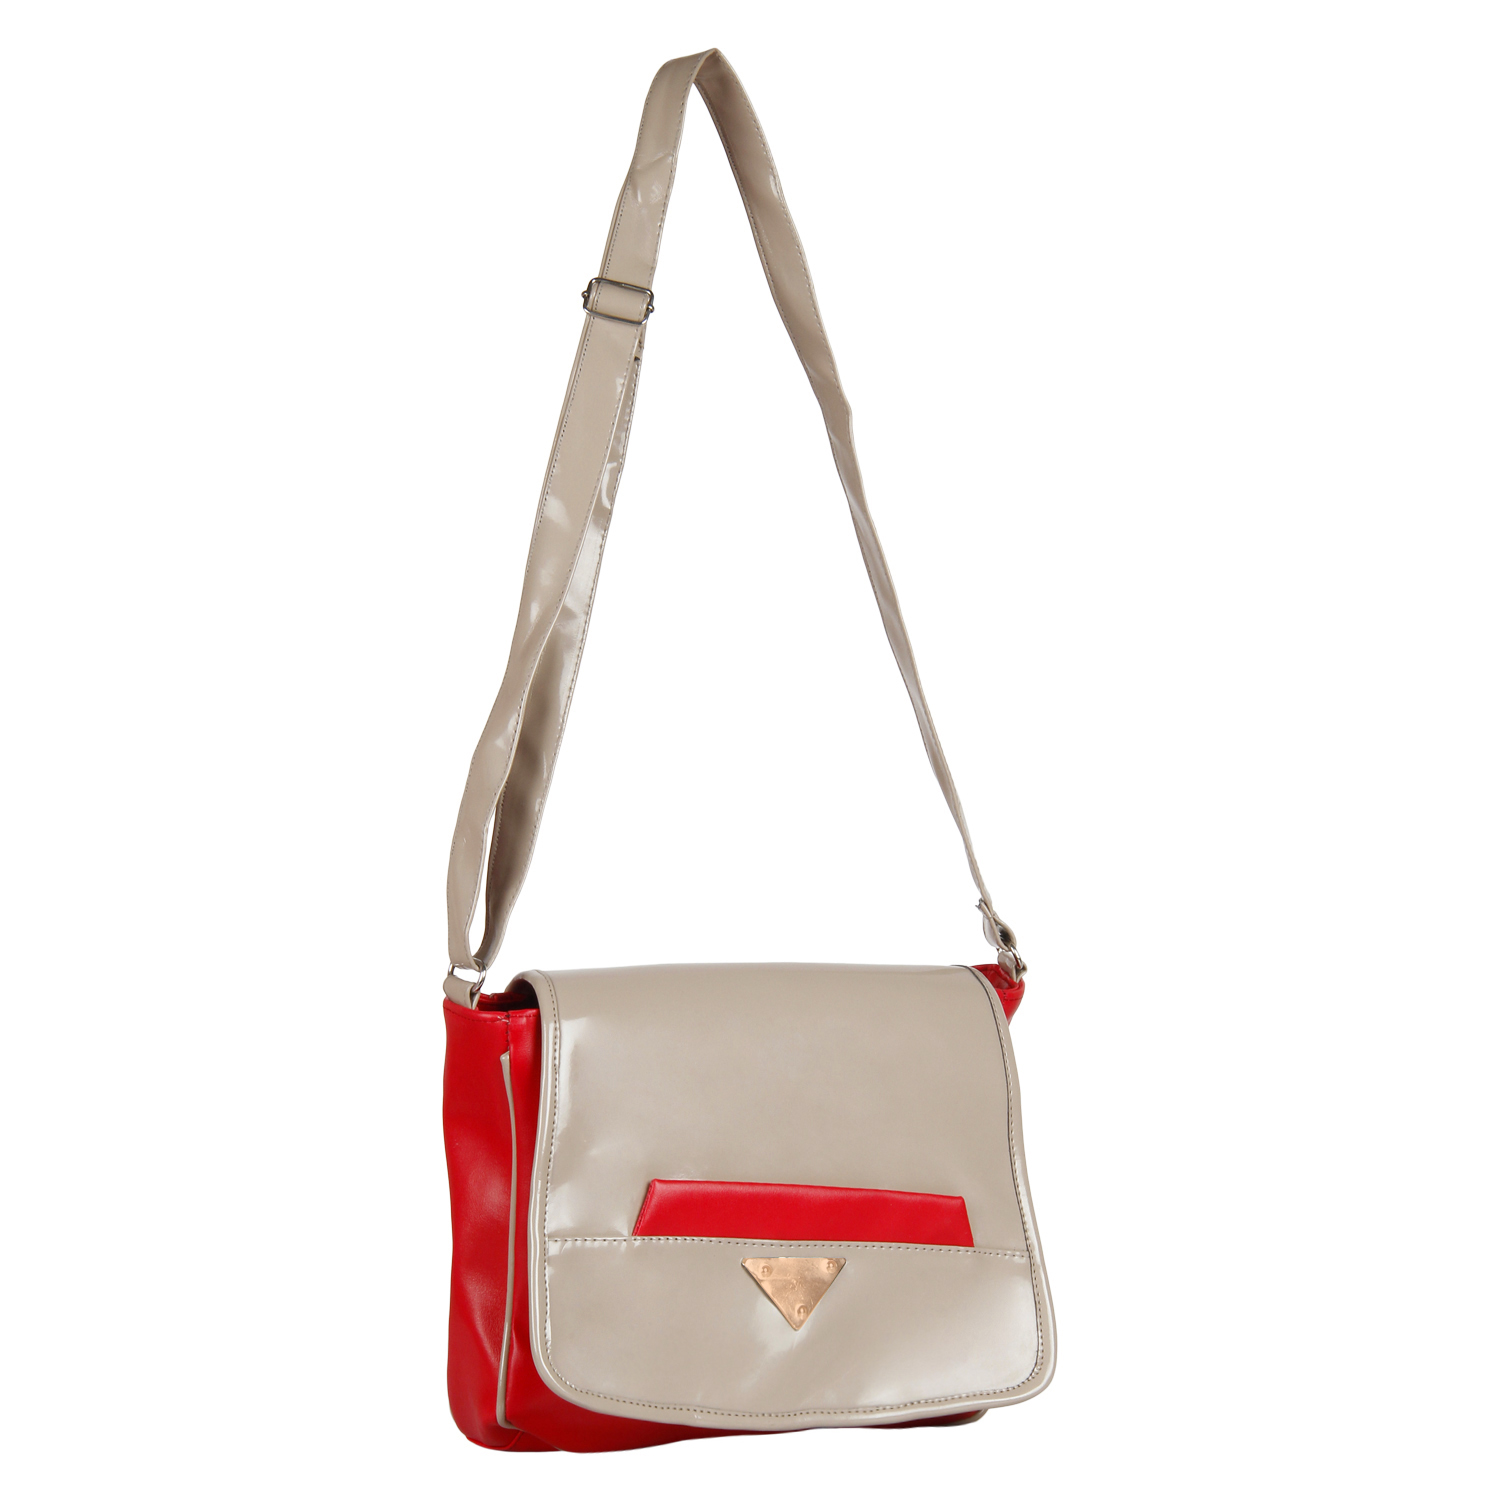 Innovative The Most Important Job Of A Casual Tote Bag Is To Compliment Your Casual Avatar 4 Sling Bags Sling Bags Are Ideal For Women Who Love To Carry Bare Minimum Essentials In Their Bag There Are Times When You Are Just Not In The Mood To